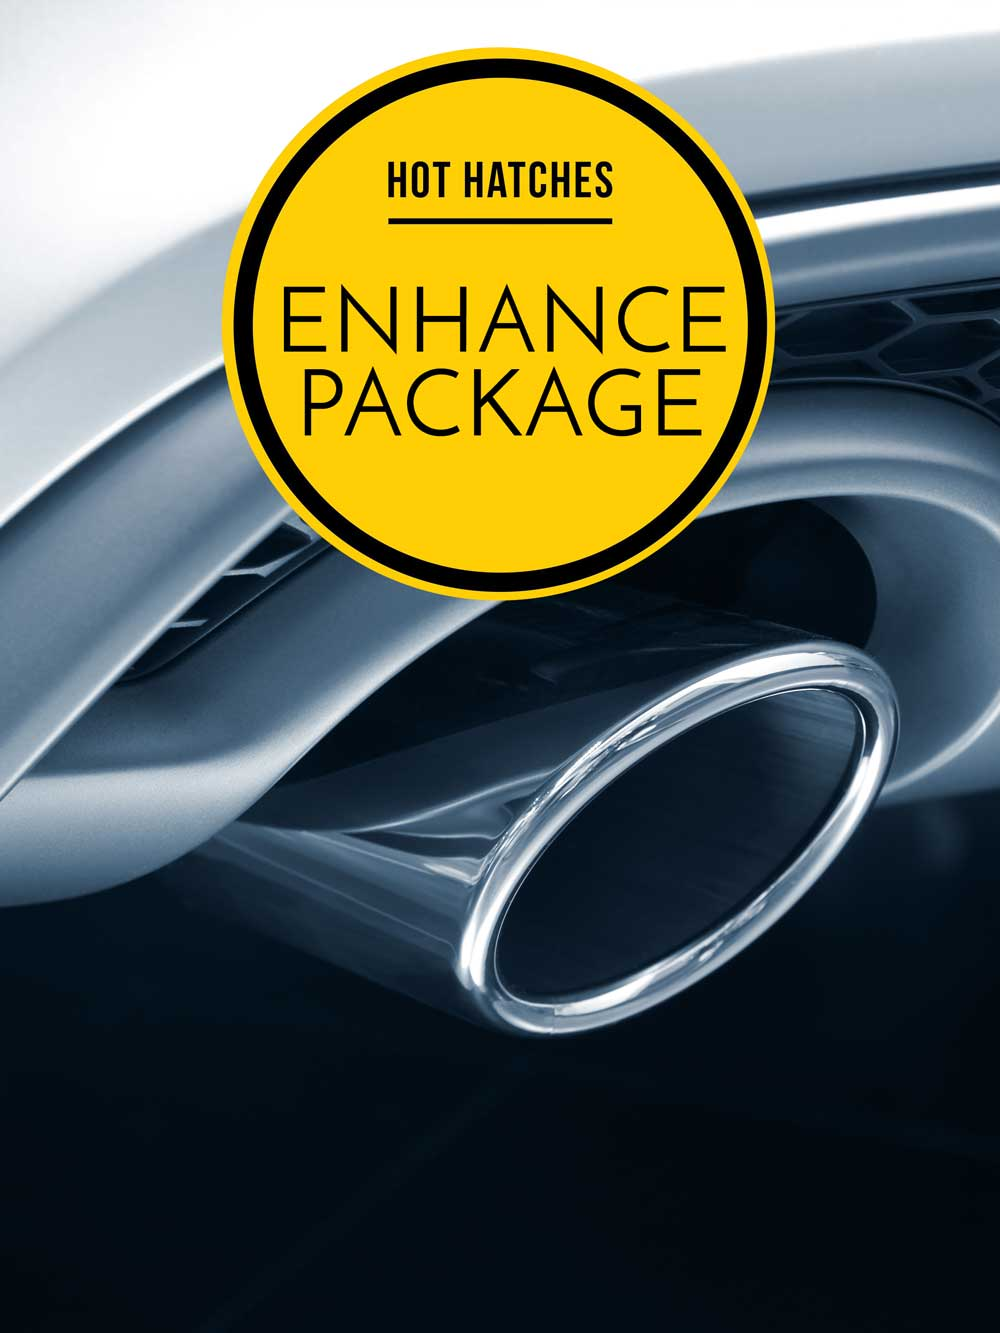 Hot Hatches Enhance Package